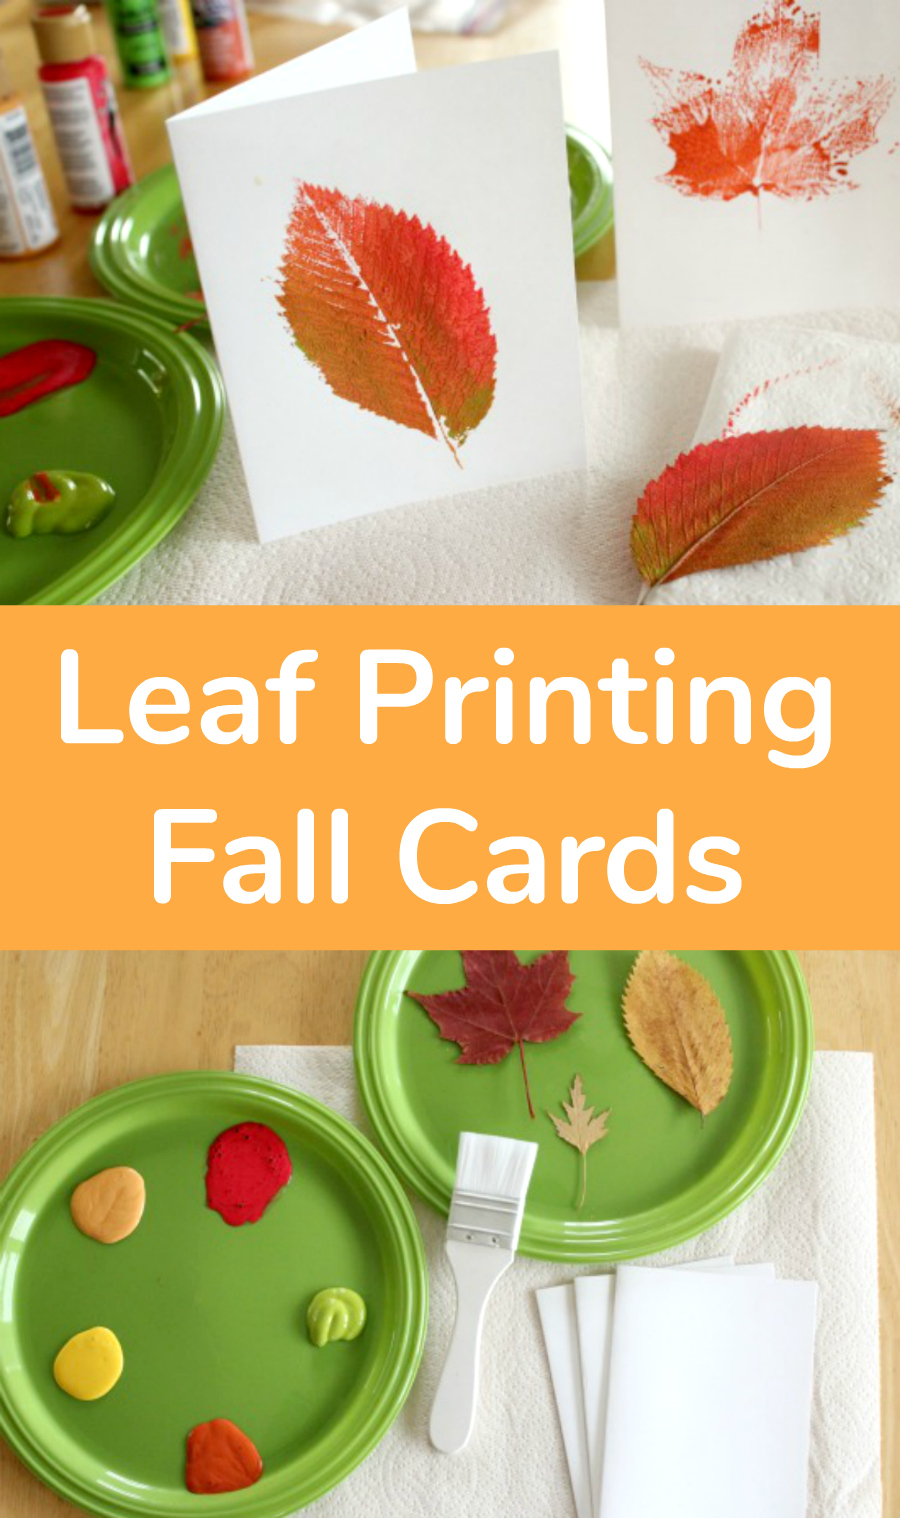 Leaf Printing Fall Cards